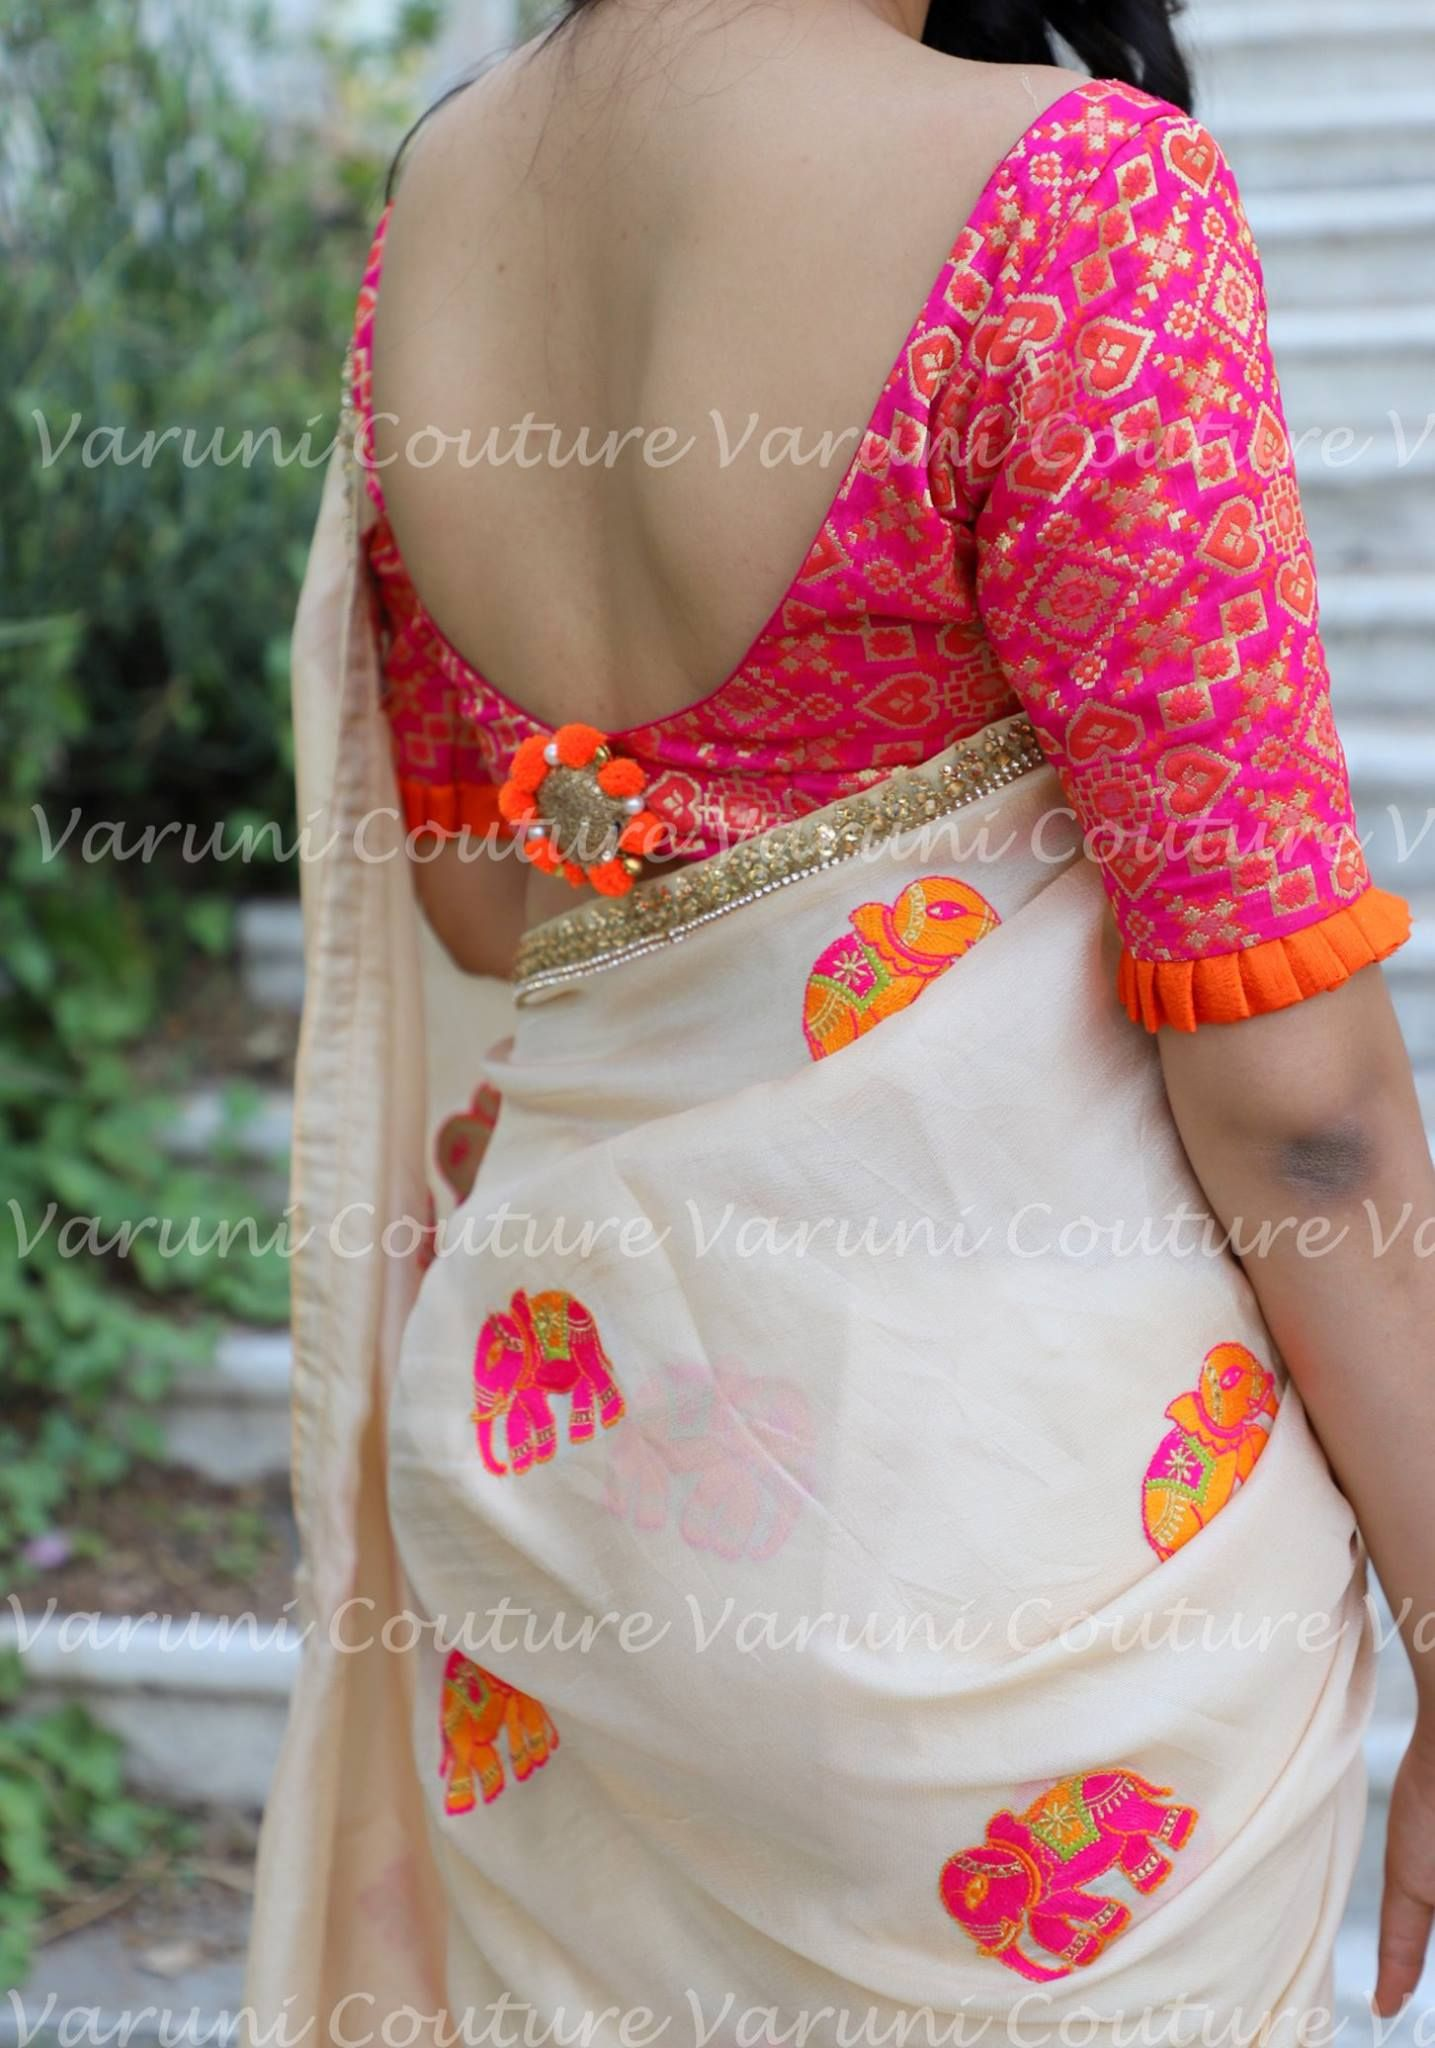 6a45b81d88c5e Saree Code VC HAATHI Beige blended jute silk embellished with elephant  motifs which is enhanced with a brocade blouse which adds to the look.  comes with an ...